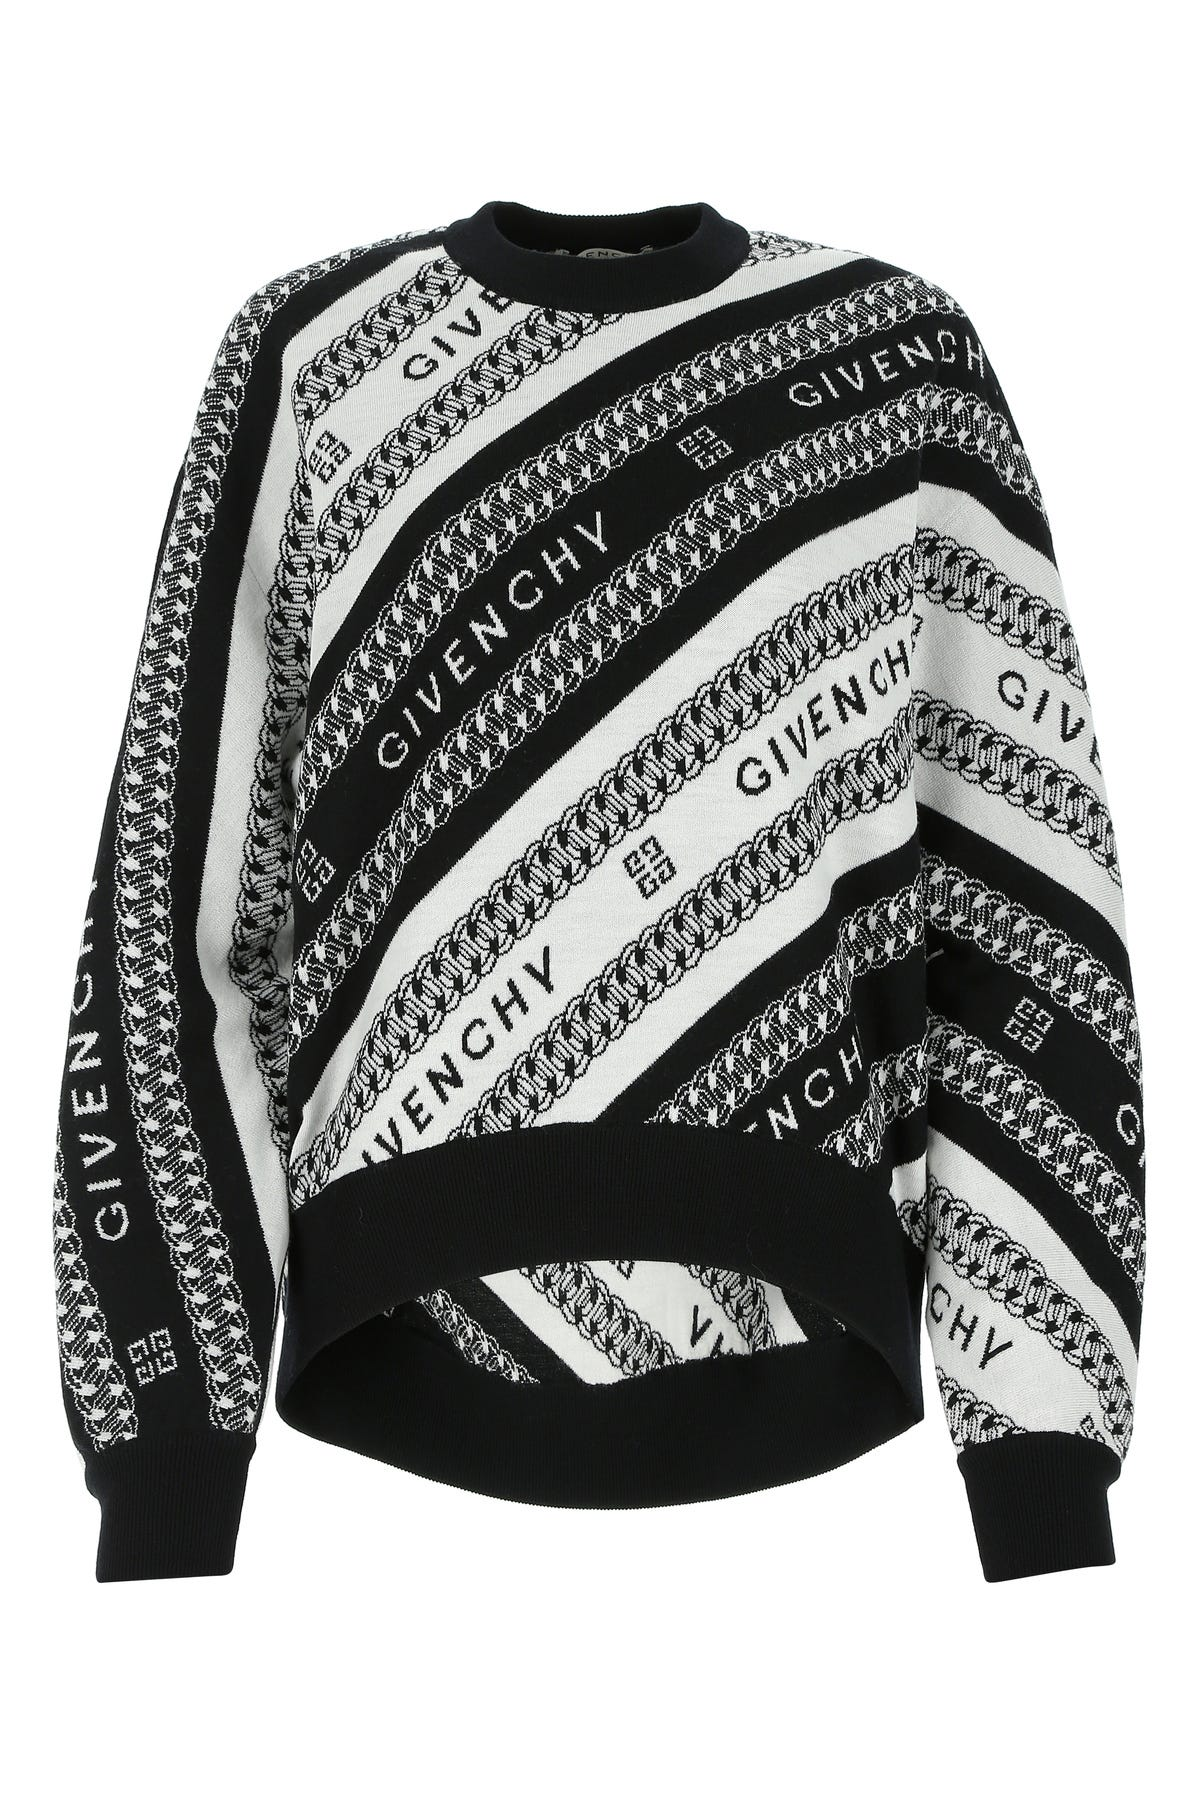 Givenchy Sweater In Black